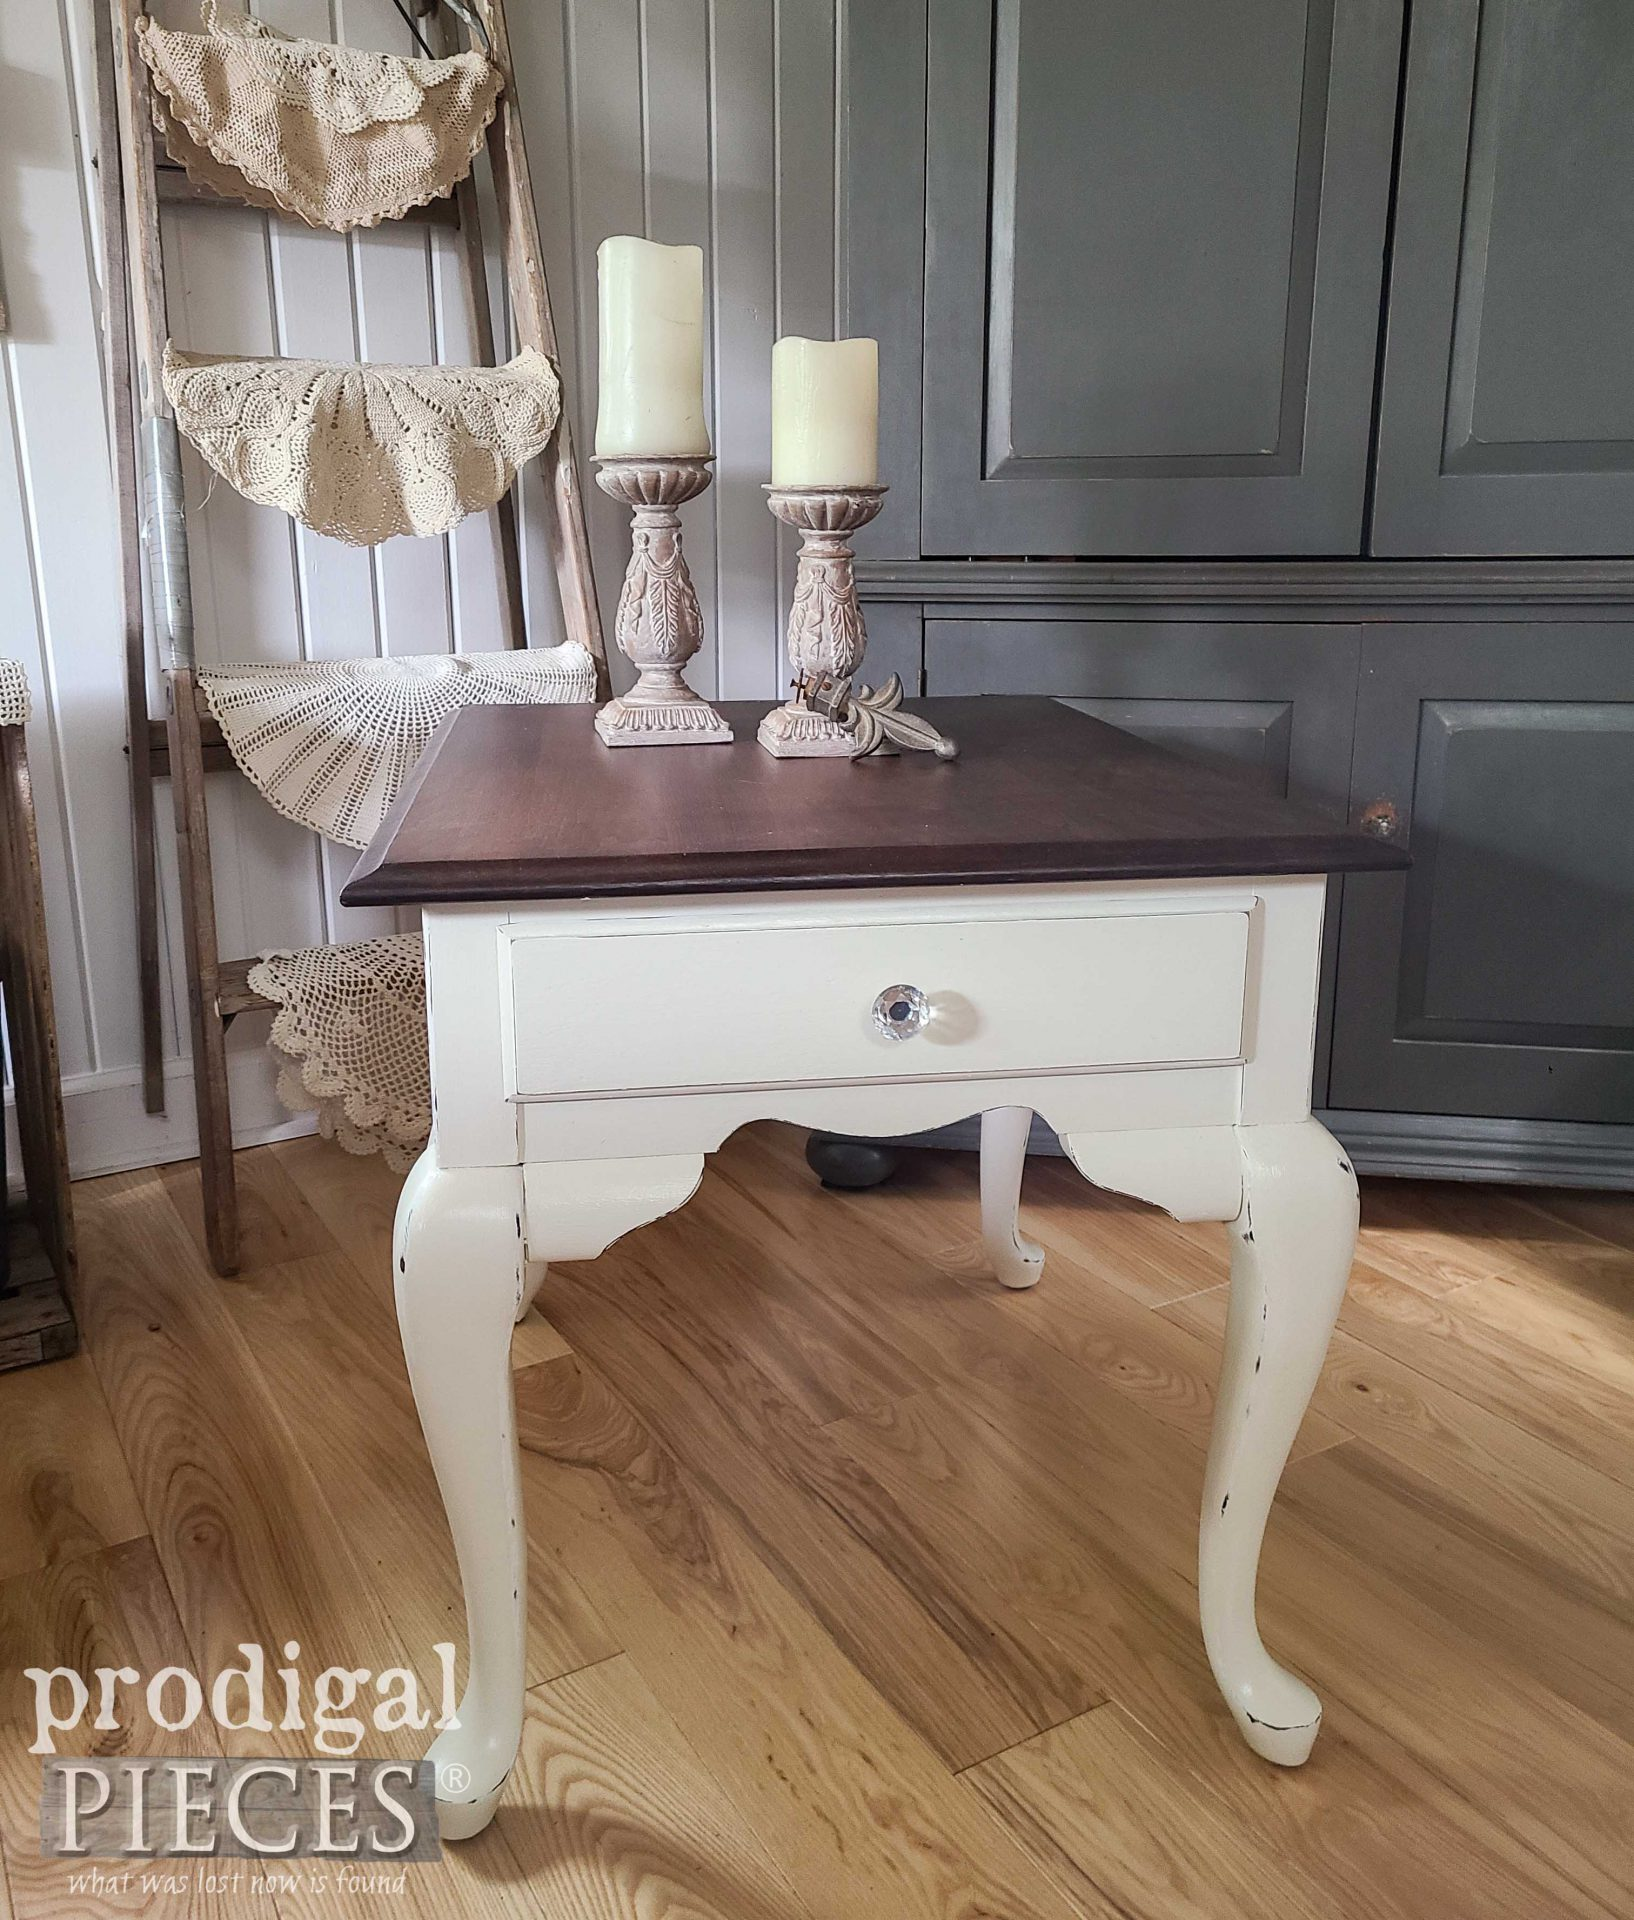 Vintage Queen Anne Side Table Refinished by Prodigal Pieces | prodigalpieces.com #prodigalpieces #furniture #home #homedecor #farmhouse #vintage